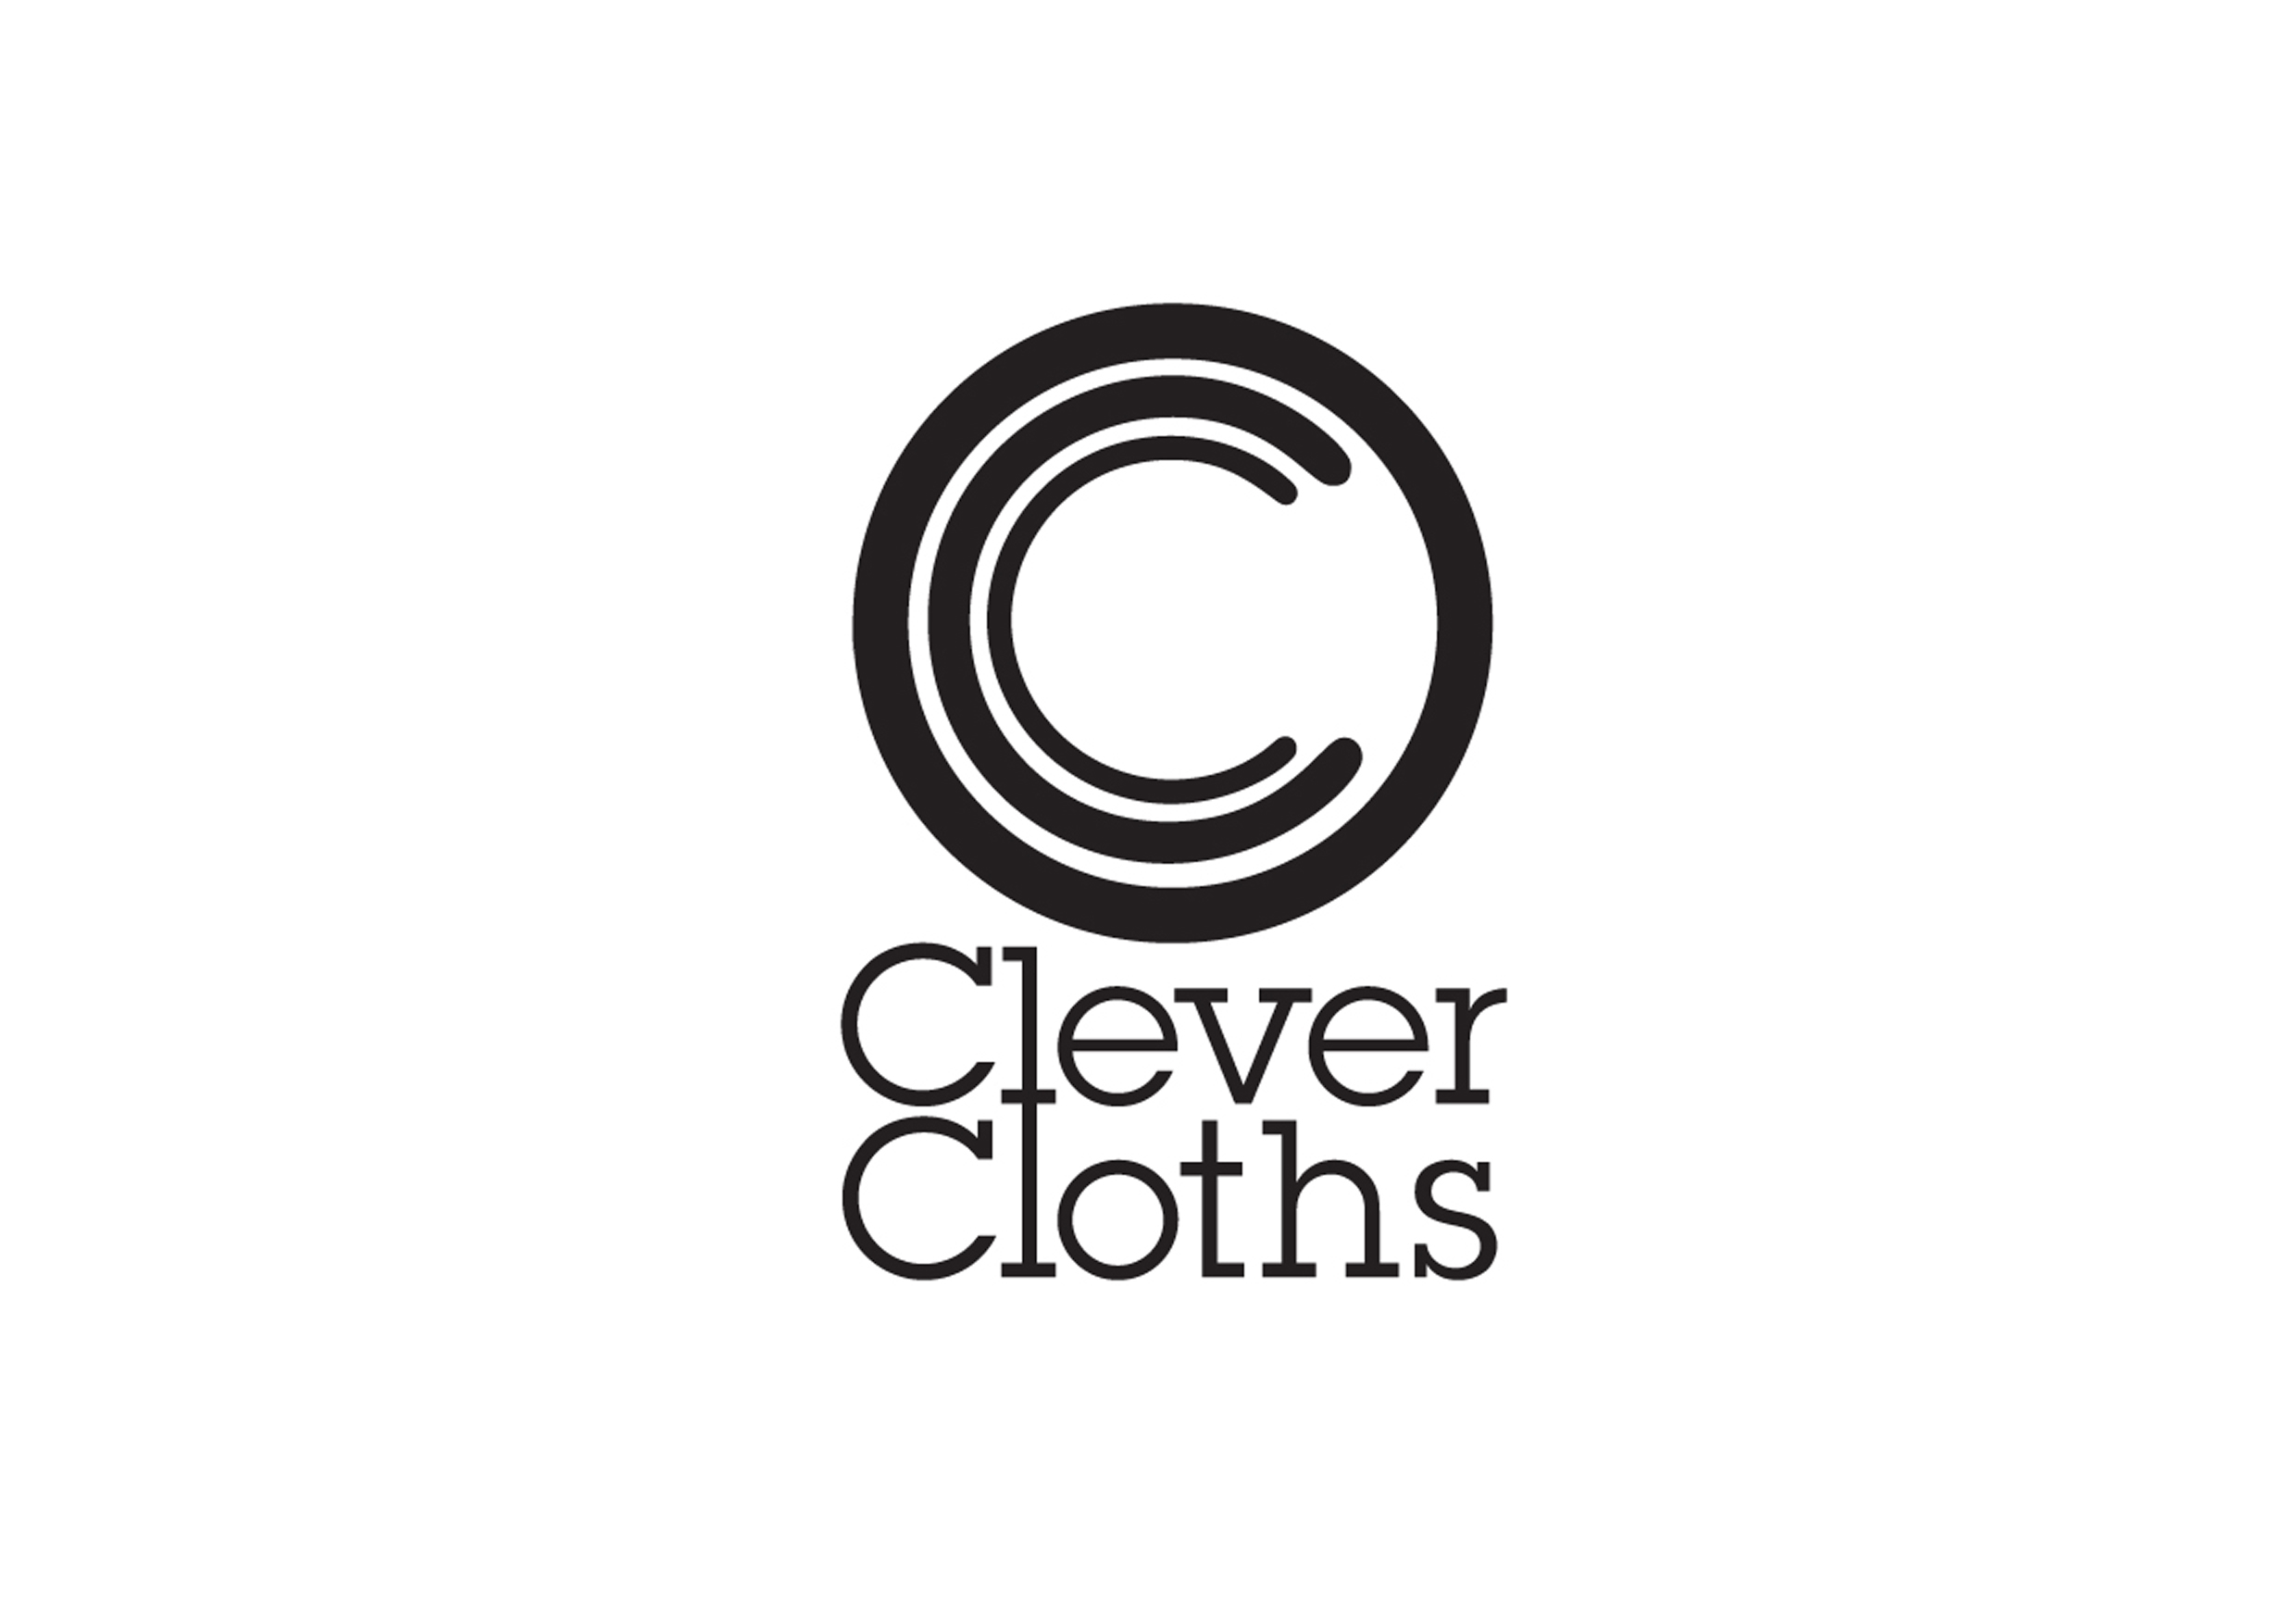 CLEVER CLOTHS